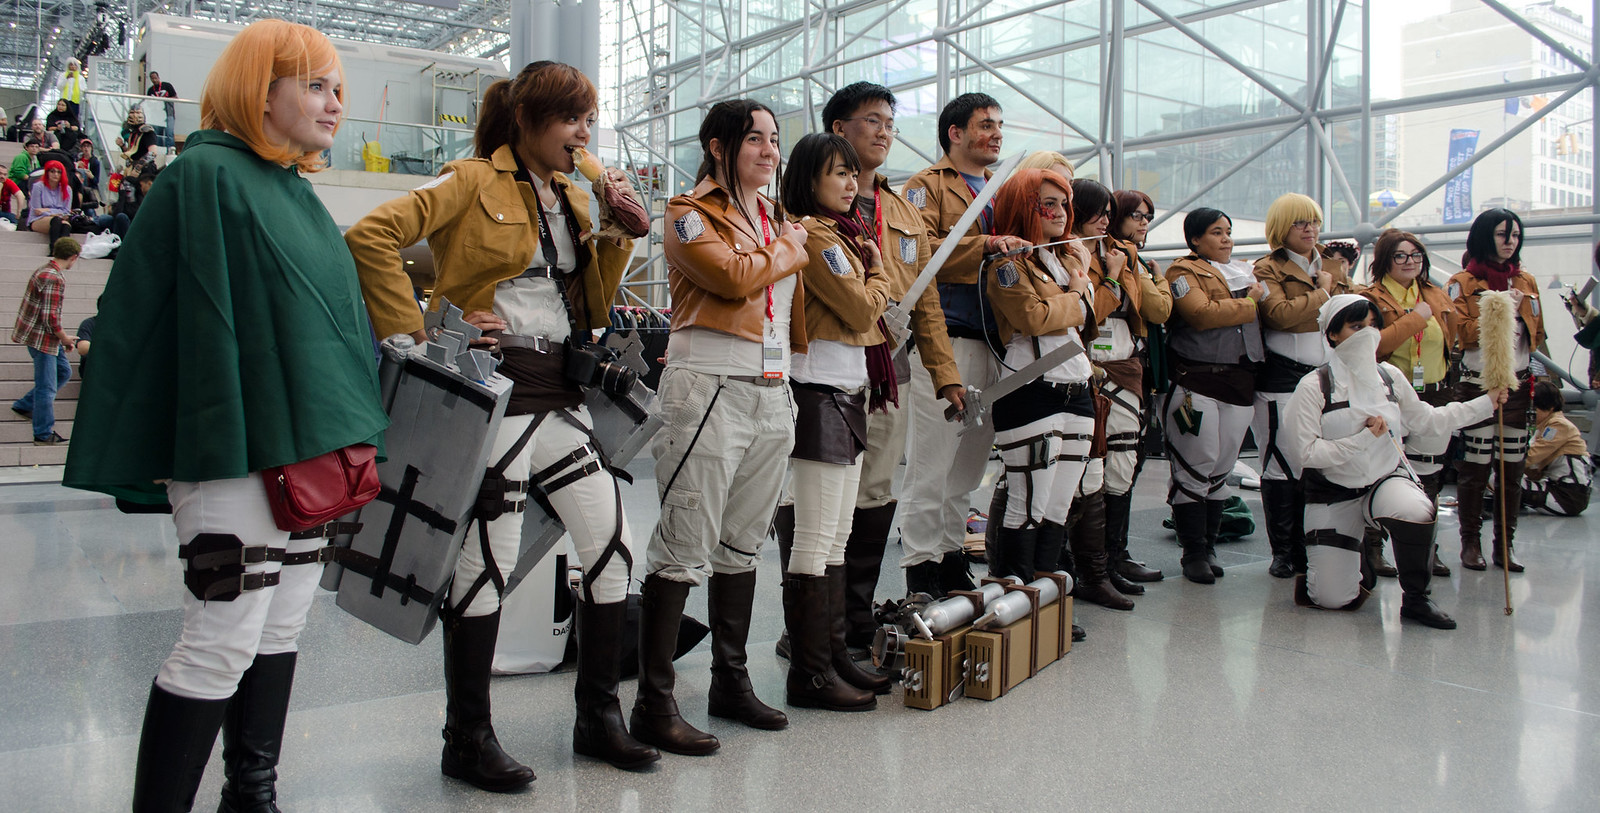 NYCC 2013 Attack on Titan Cosplay